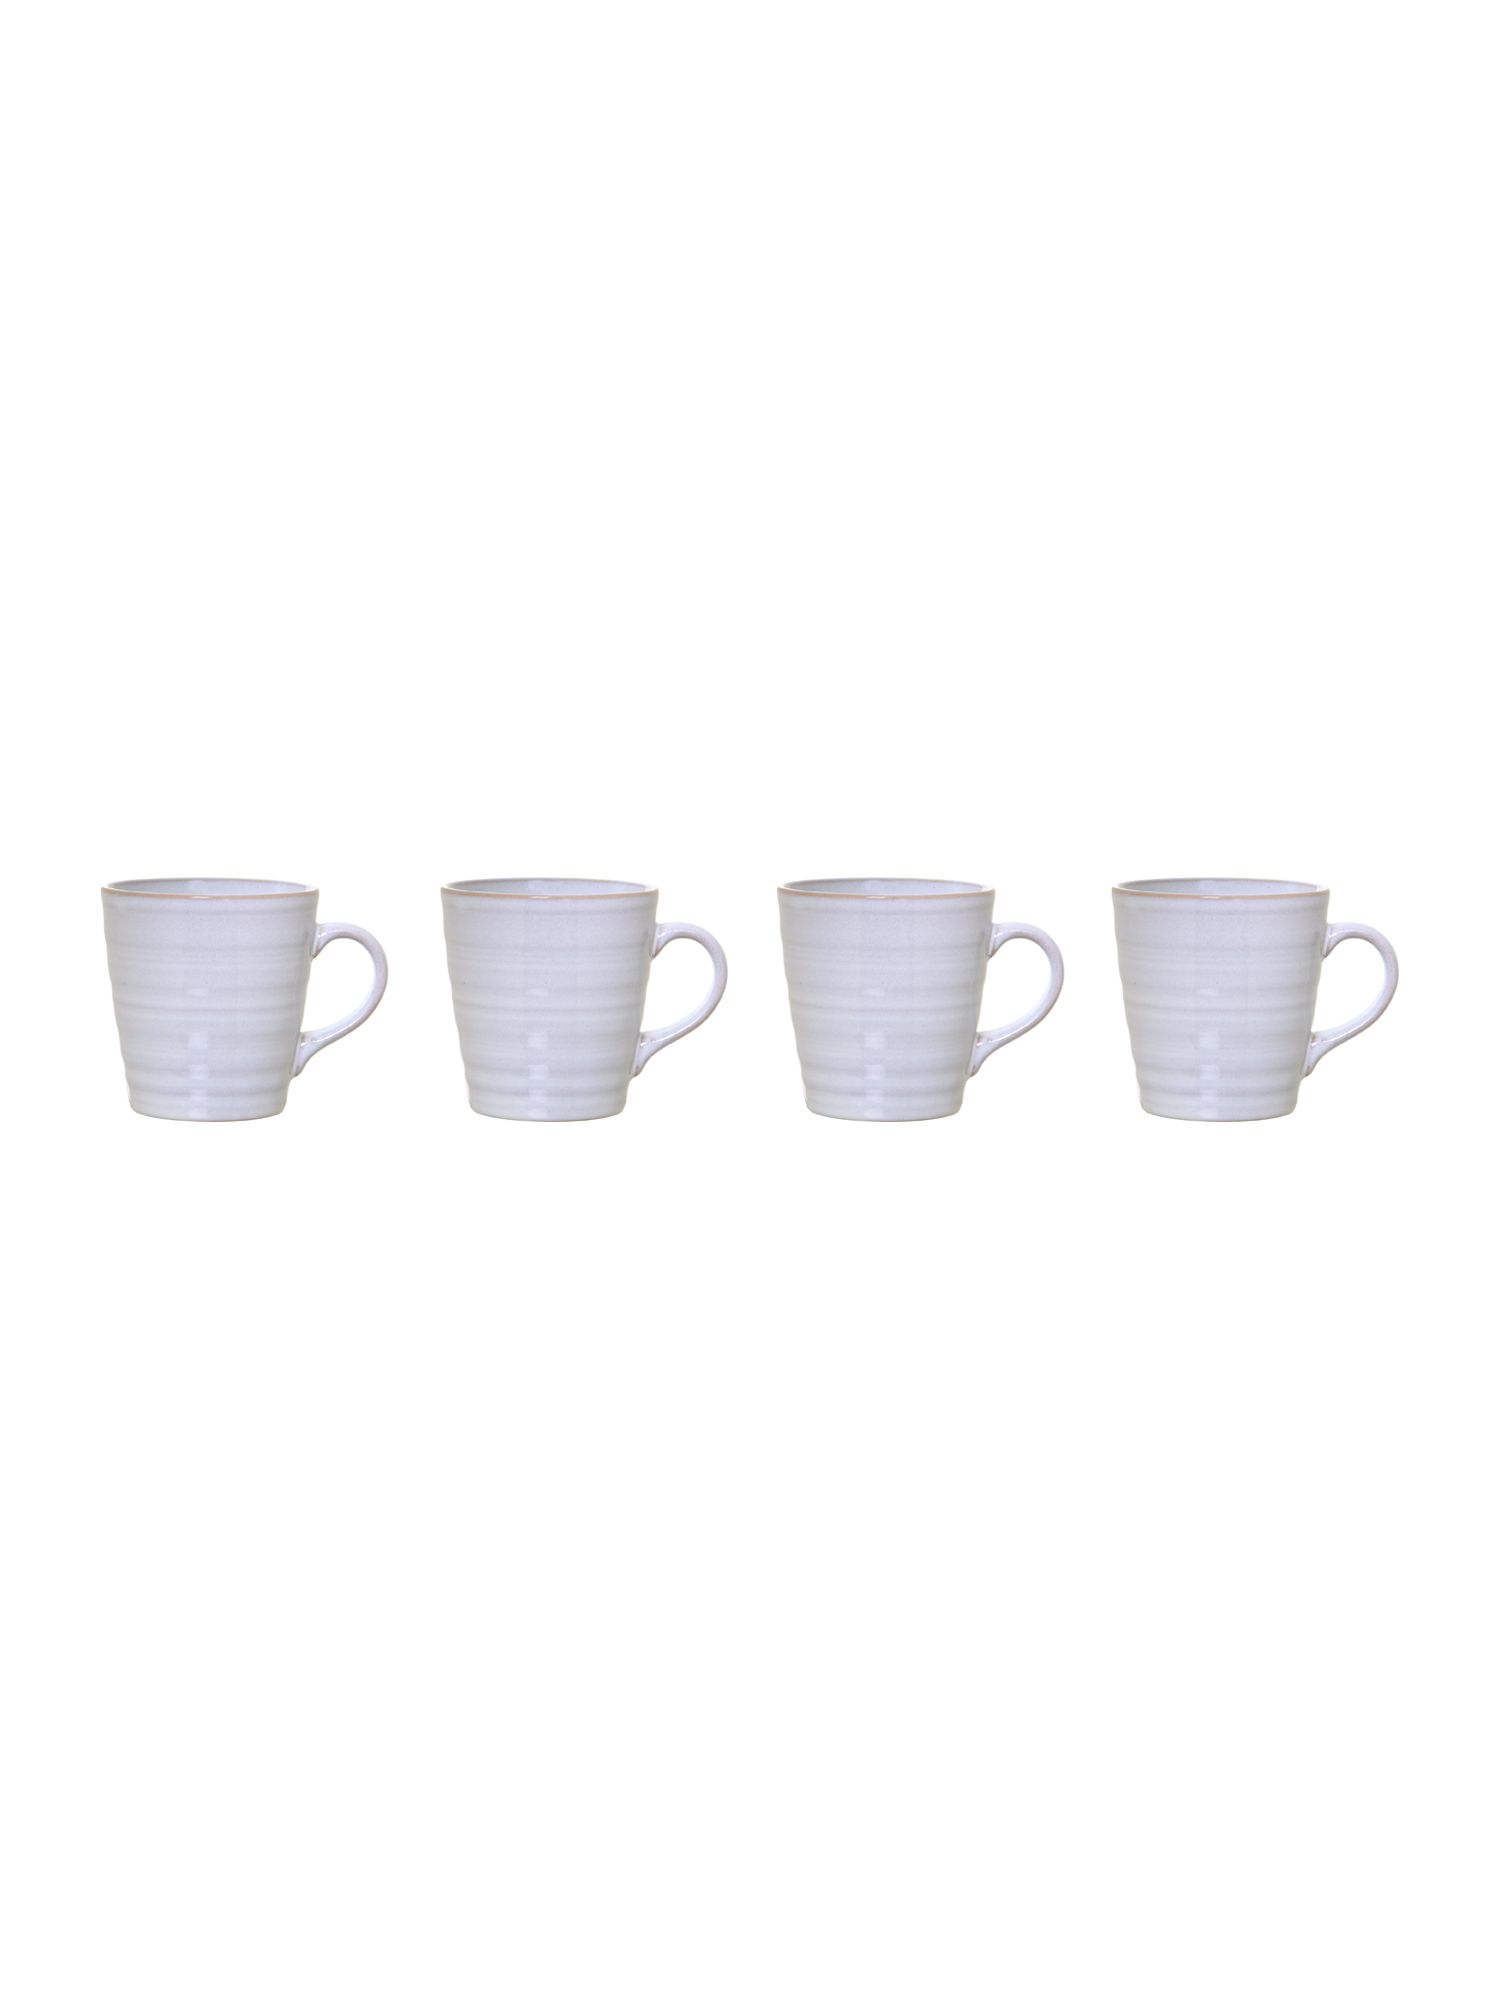 Echo set of 4 mugs